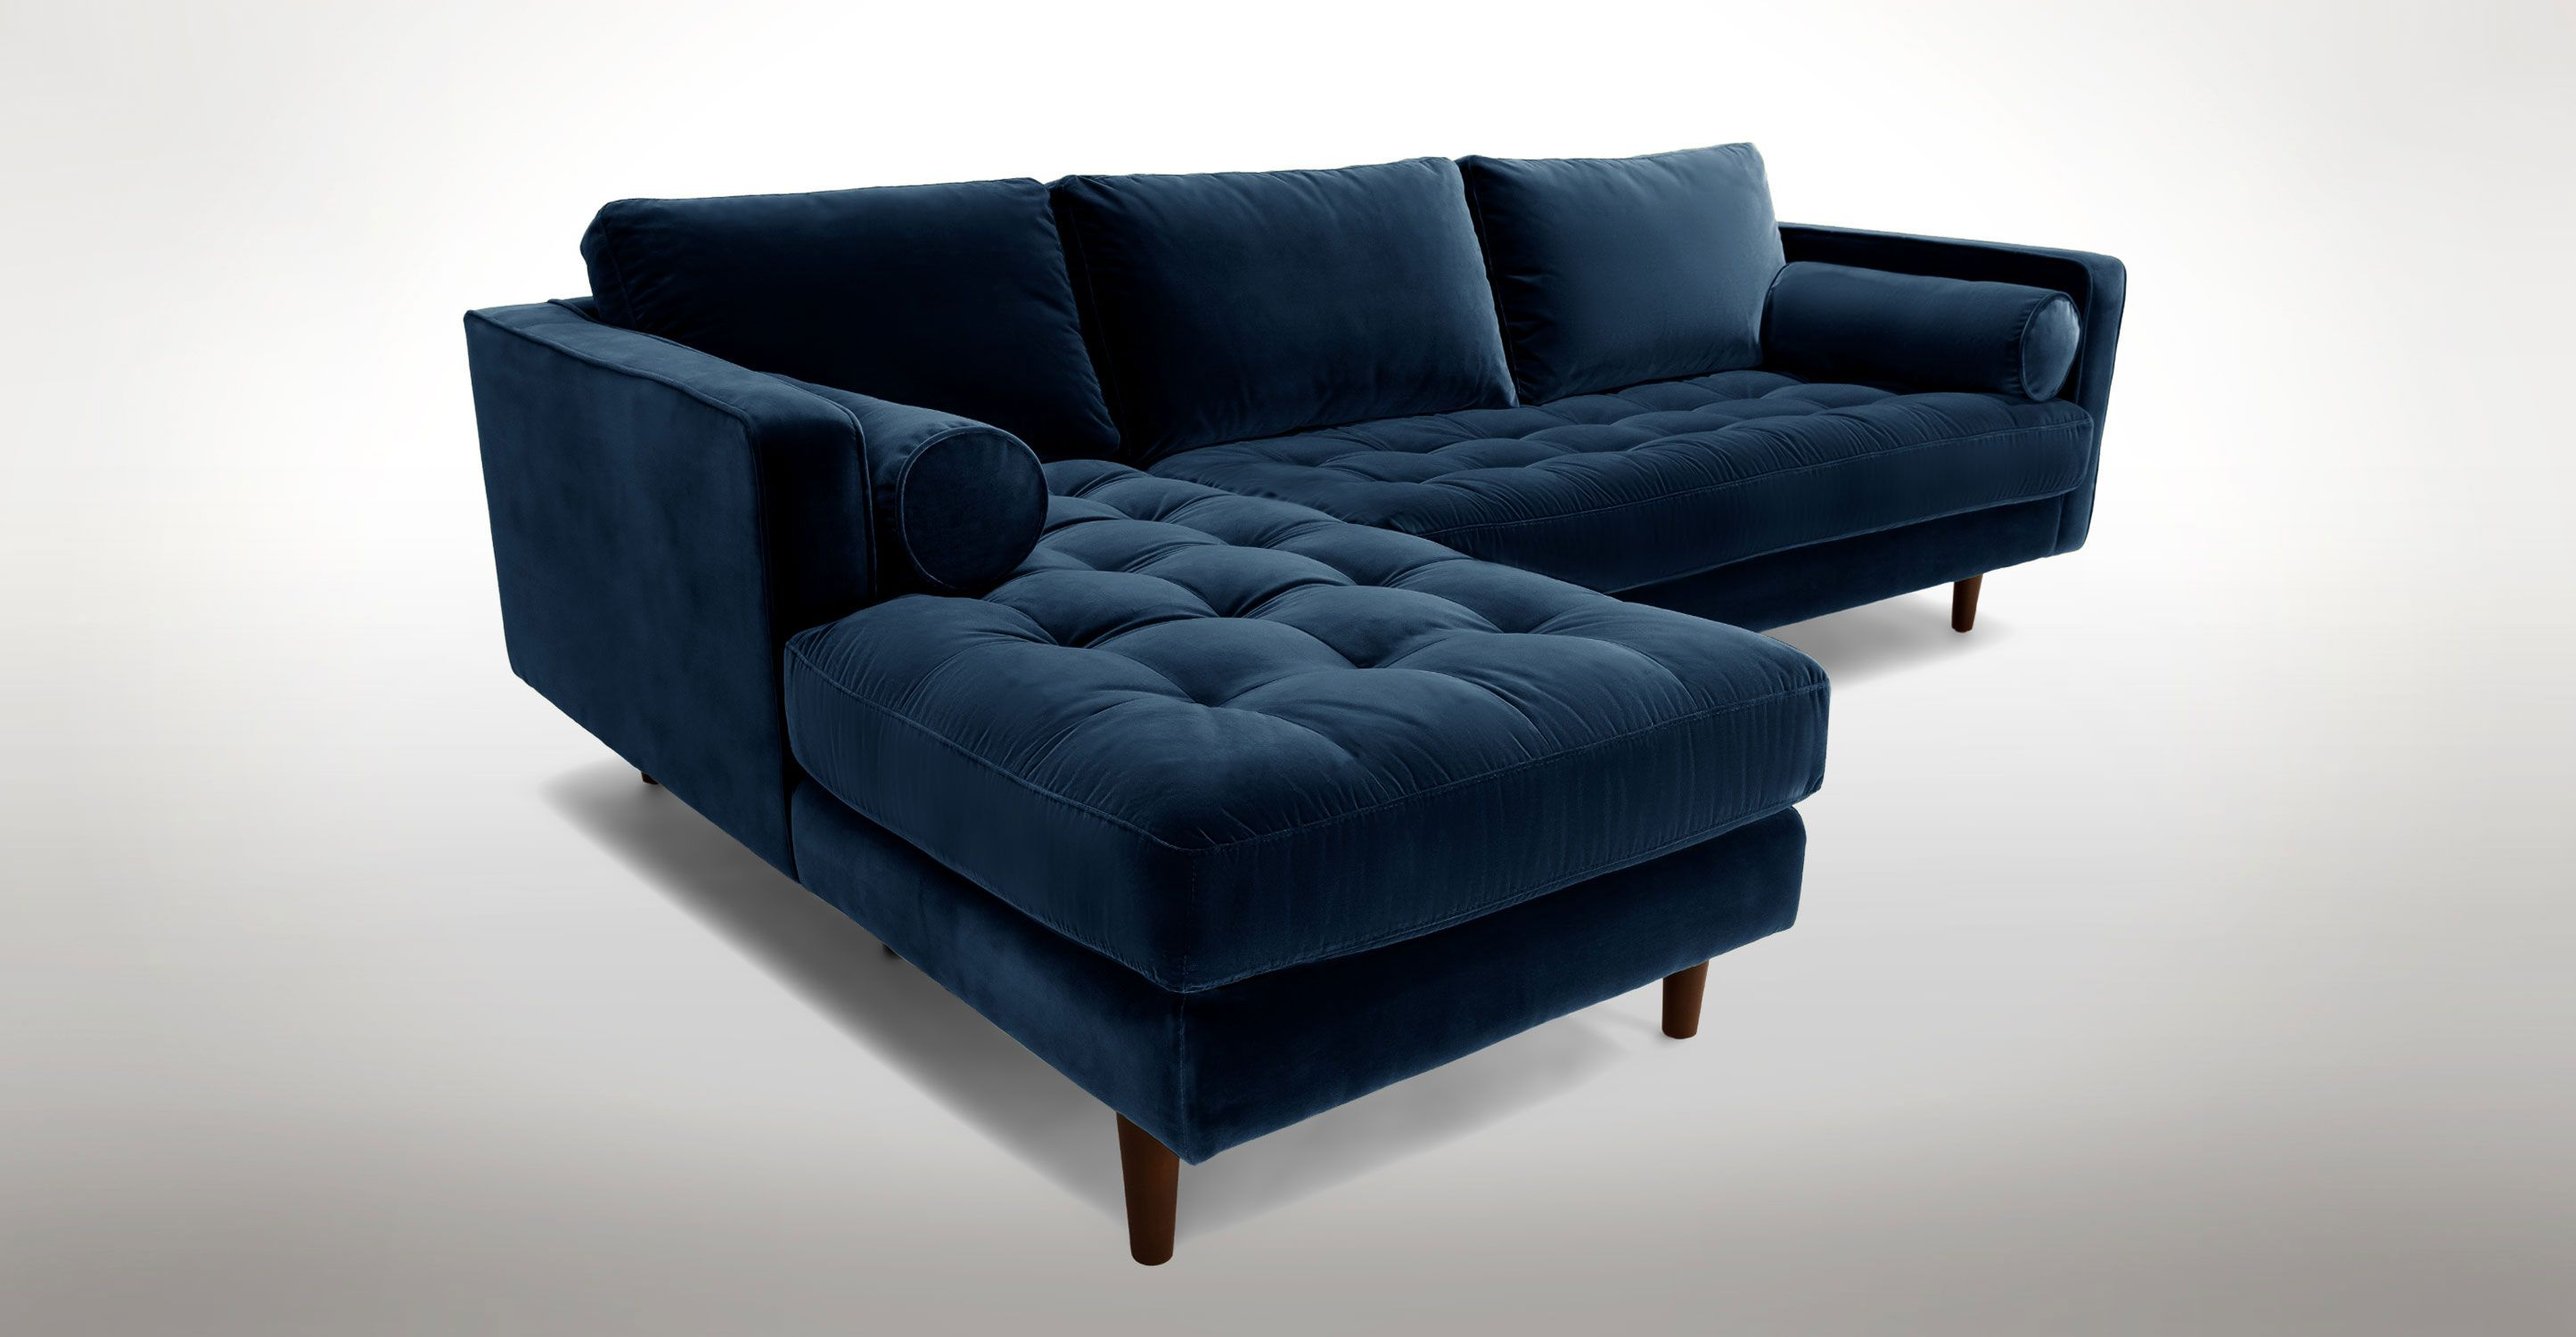 Sven Cascadia Blue Left Sectional Sofa hair